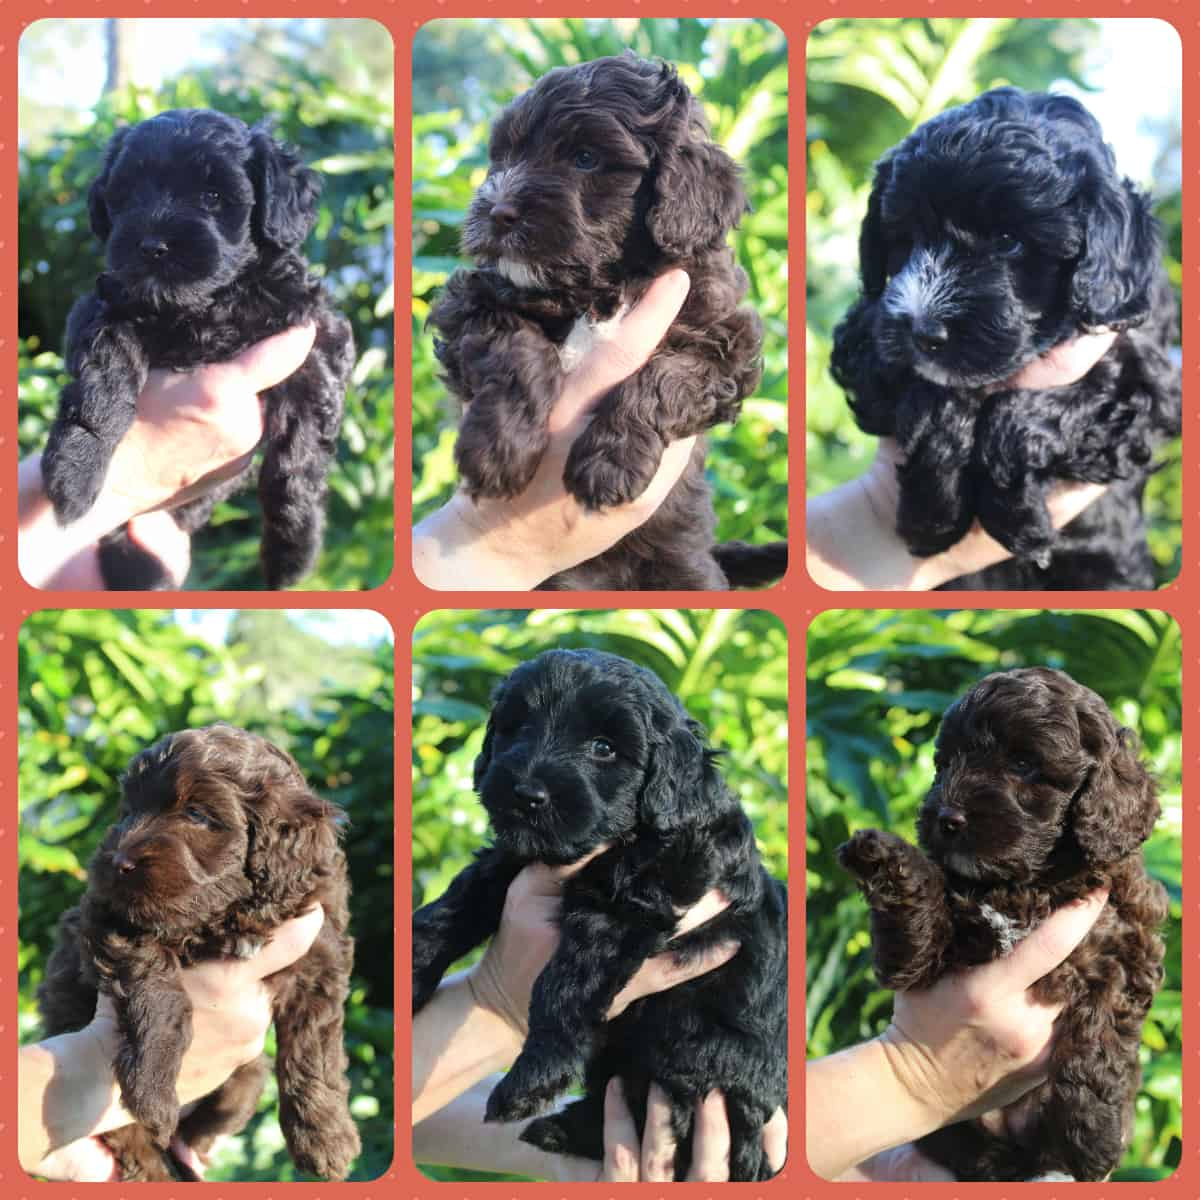 Caiya and Sire Connor has a delightful llitter of 6 Australian Labradoodle puppies in the Fall of 2020.